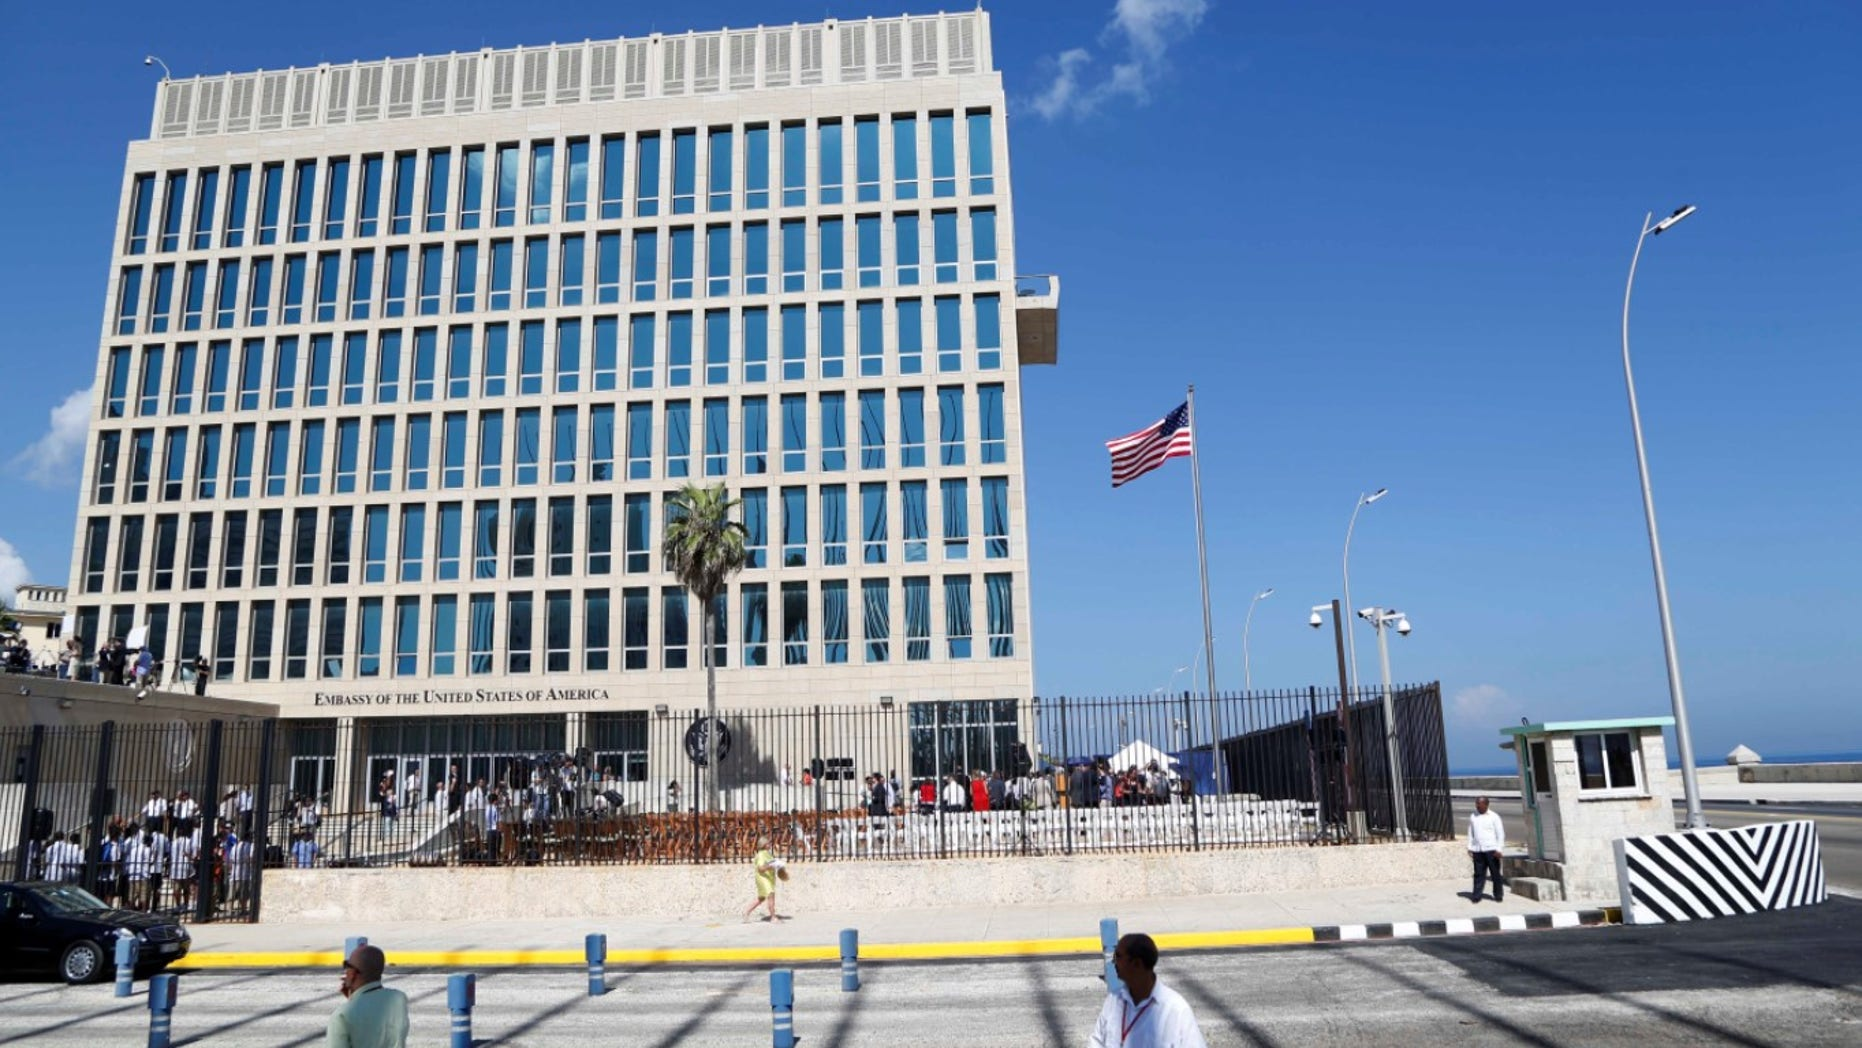 In this photo taken Aug. 14, 2015, a U.S. flag flies at the U.S. embassy in Havana, Cuba. Two more American diplomats who served in Cuba are affected by health attacks in Cuba, raising the total to 21.